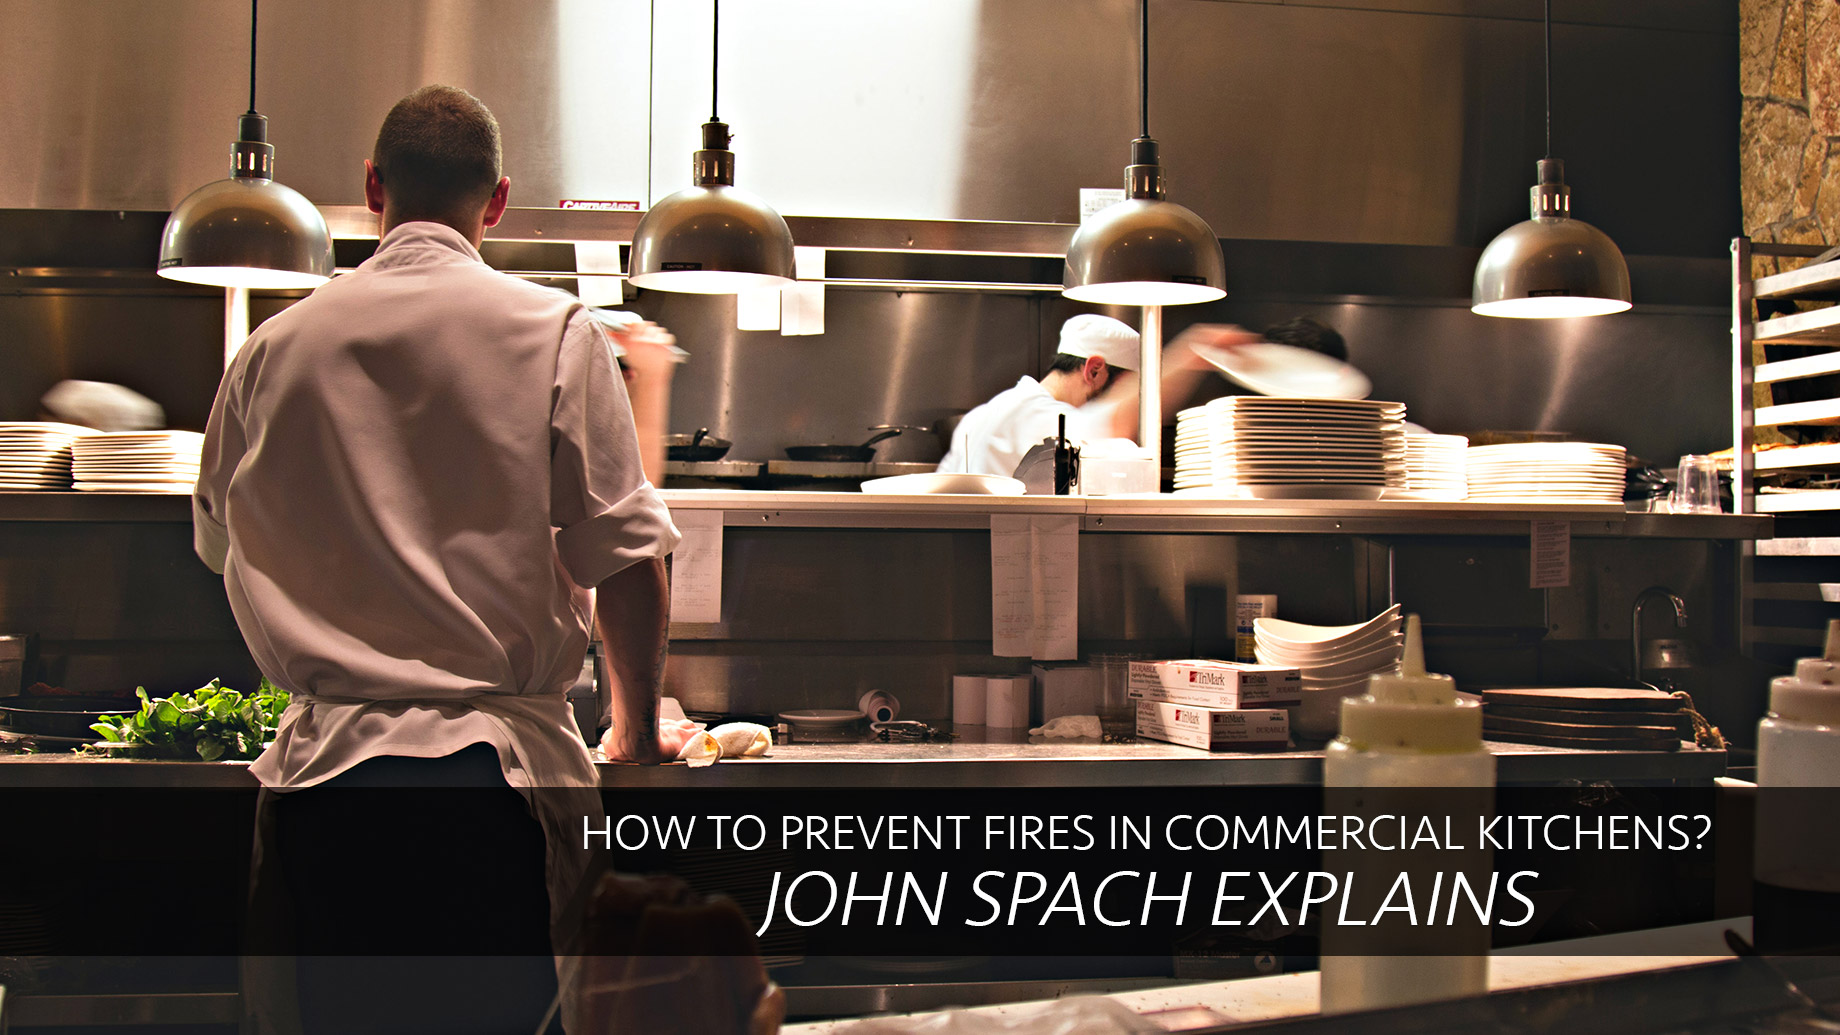 How to Prevent Fires in Commercial Kitchens? John Spach Explains